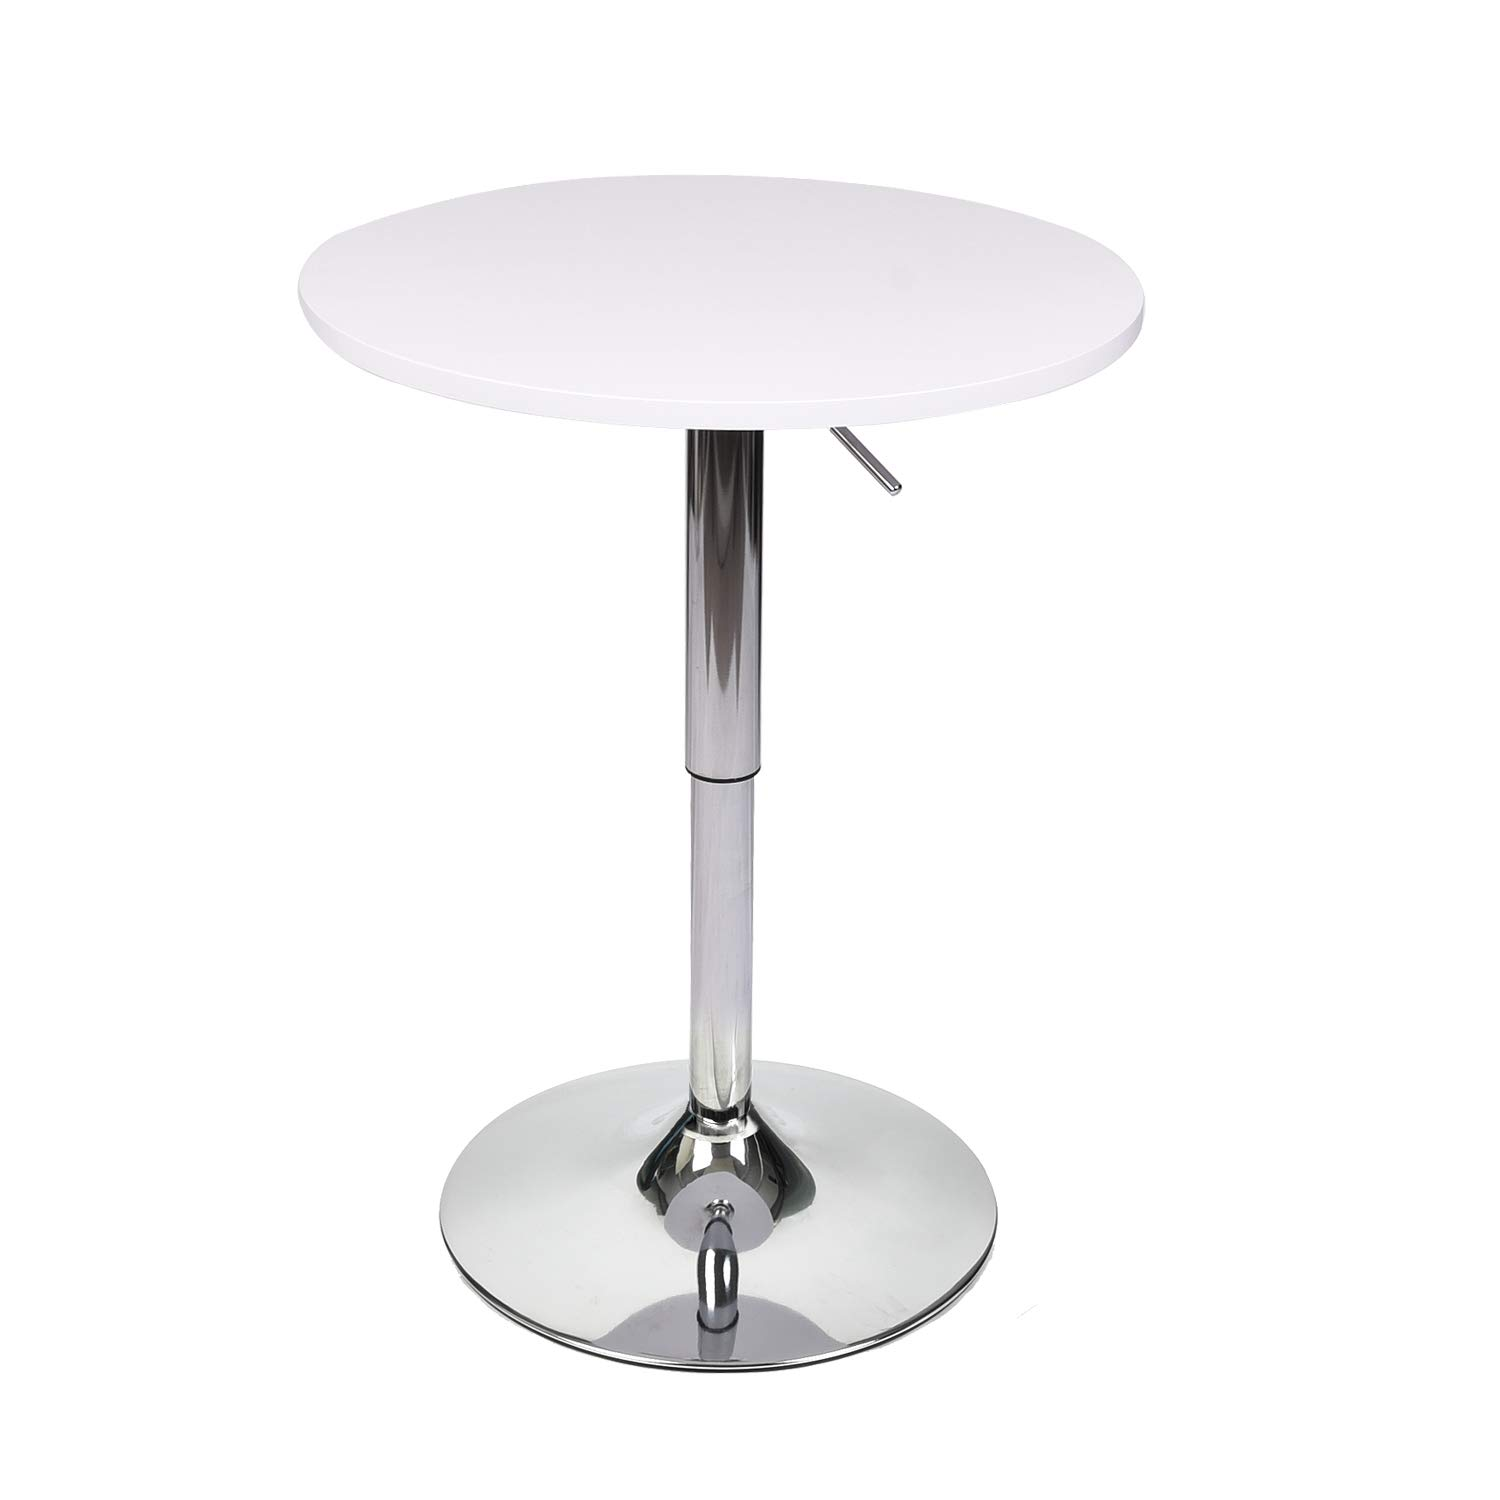 35 Inches Height Round Bar Table Adjustable Height Chrome Metal and Wood Cocktail Pub Table MDF Top 360°Swivel Furniture (White 1) by PULUOMIS